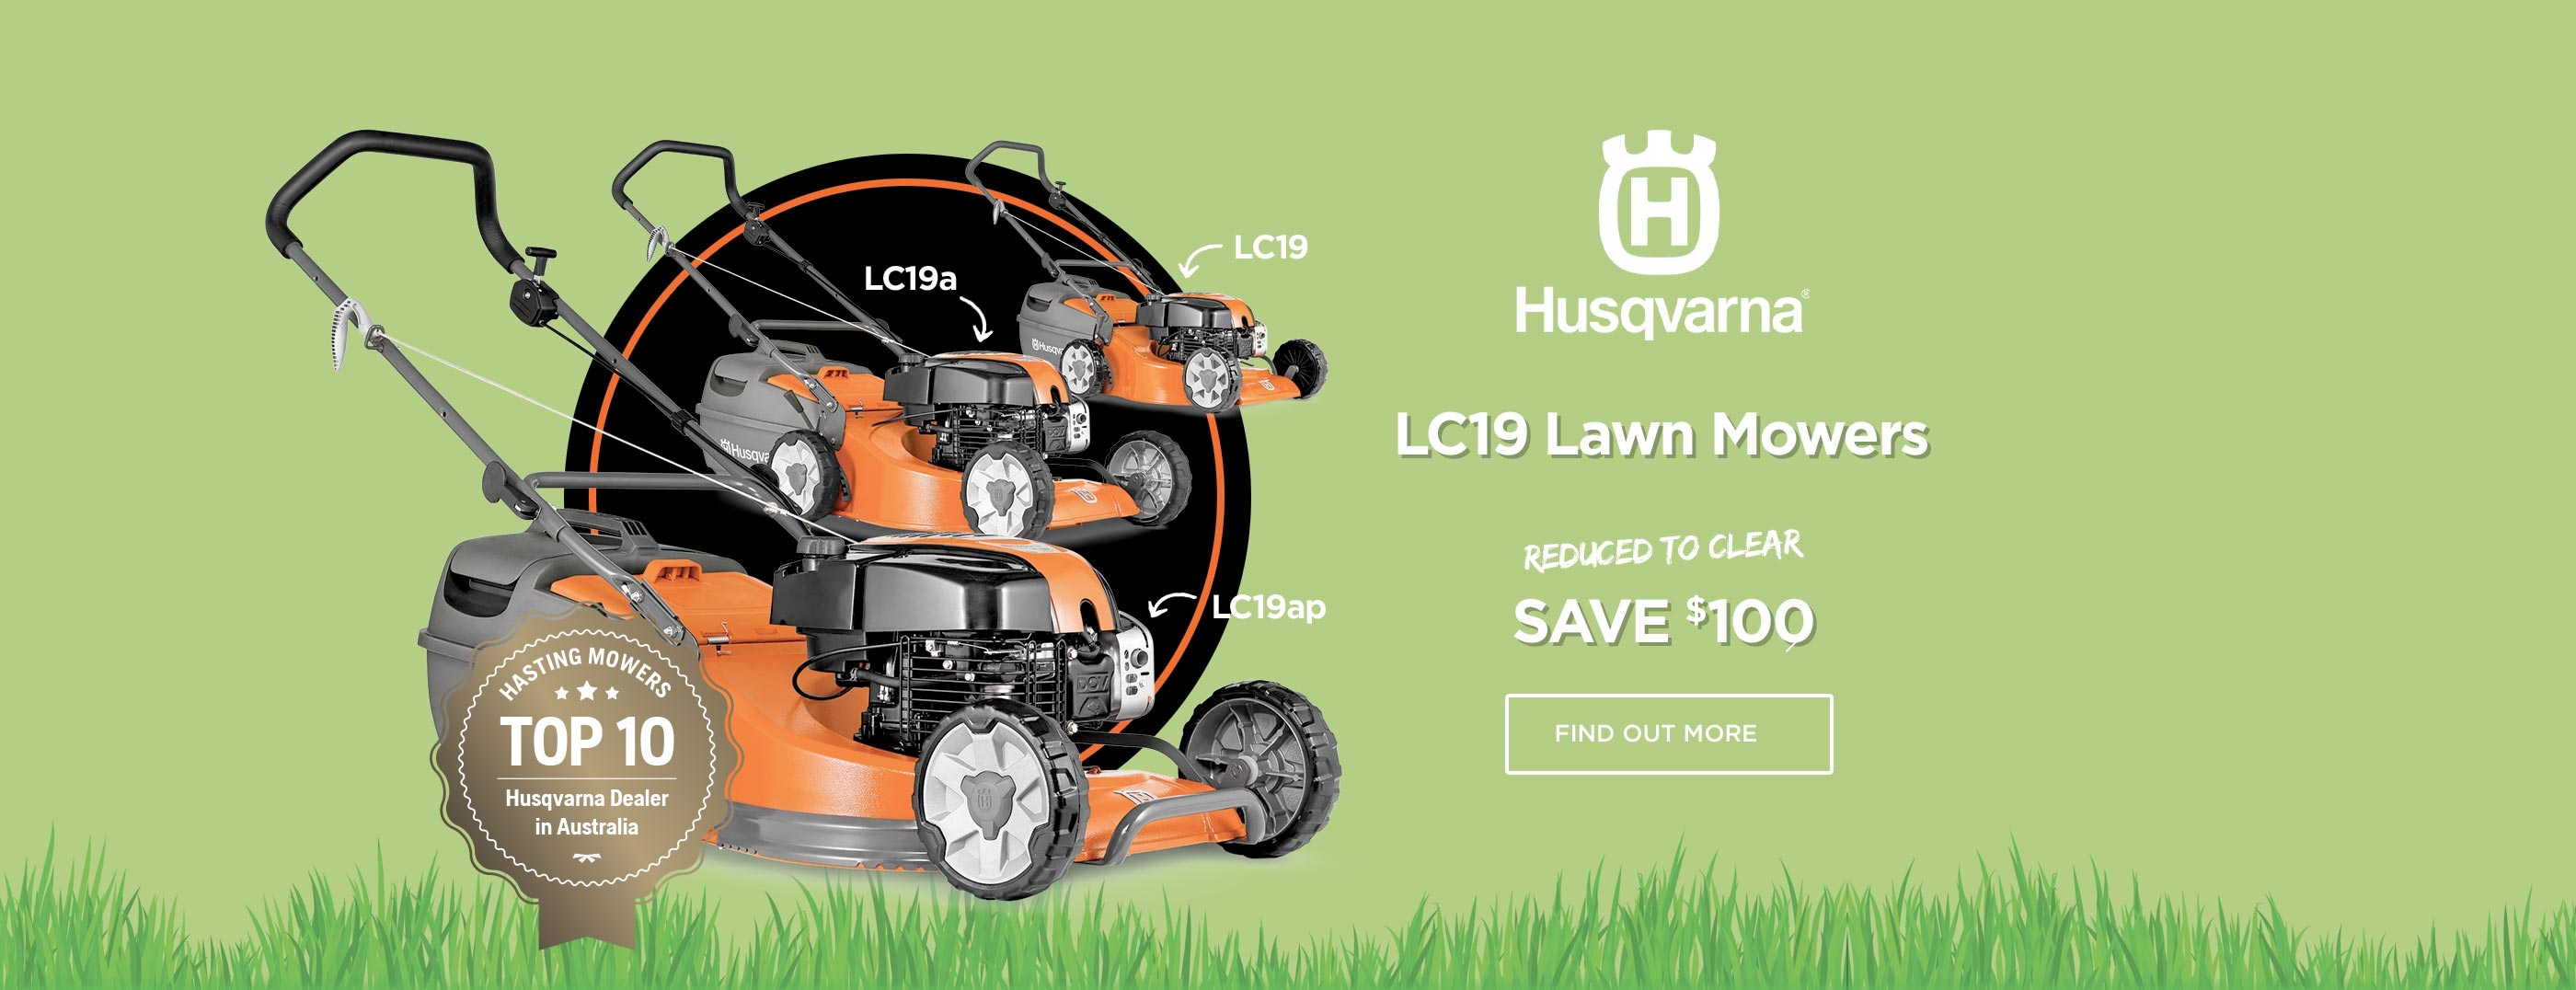 Save $100 on LC19 models!